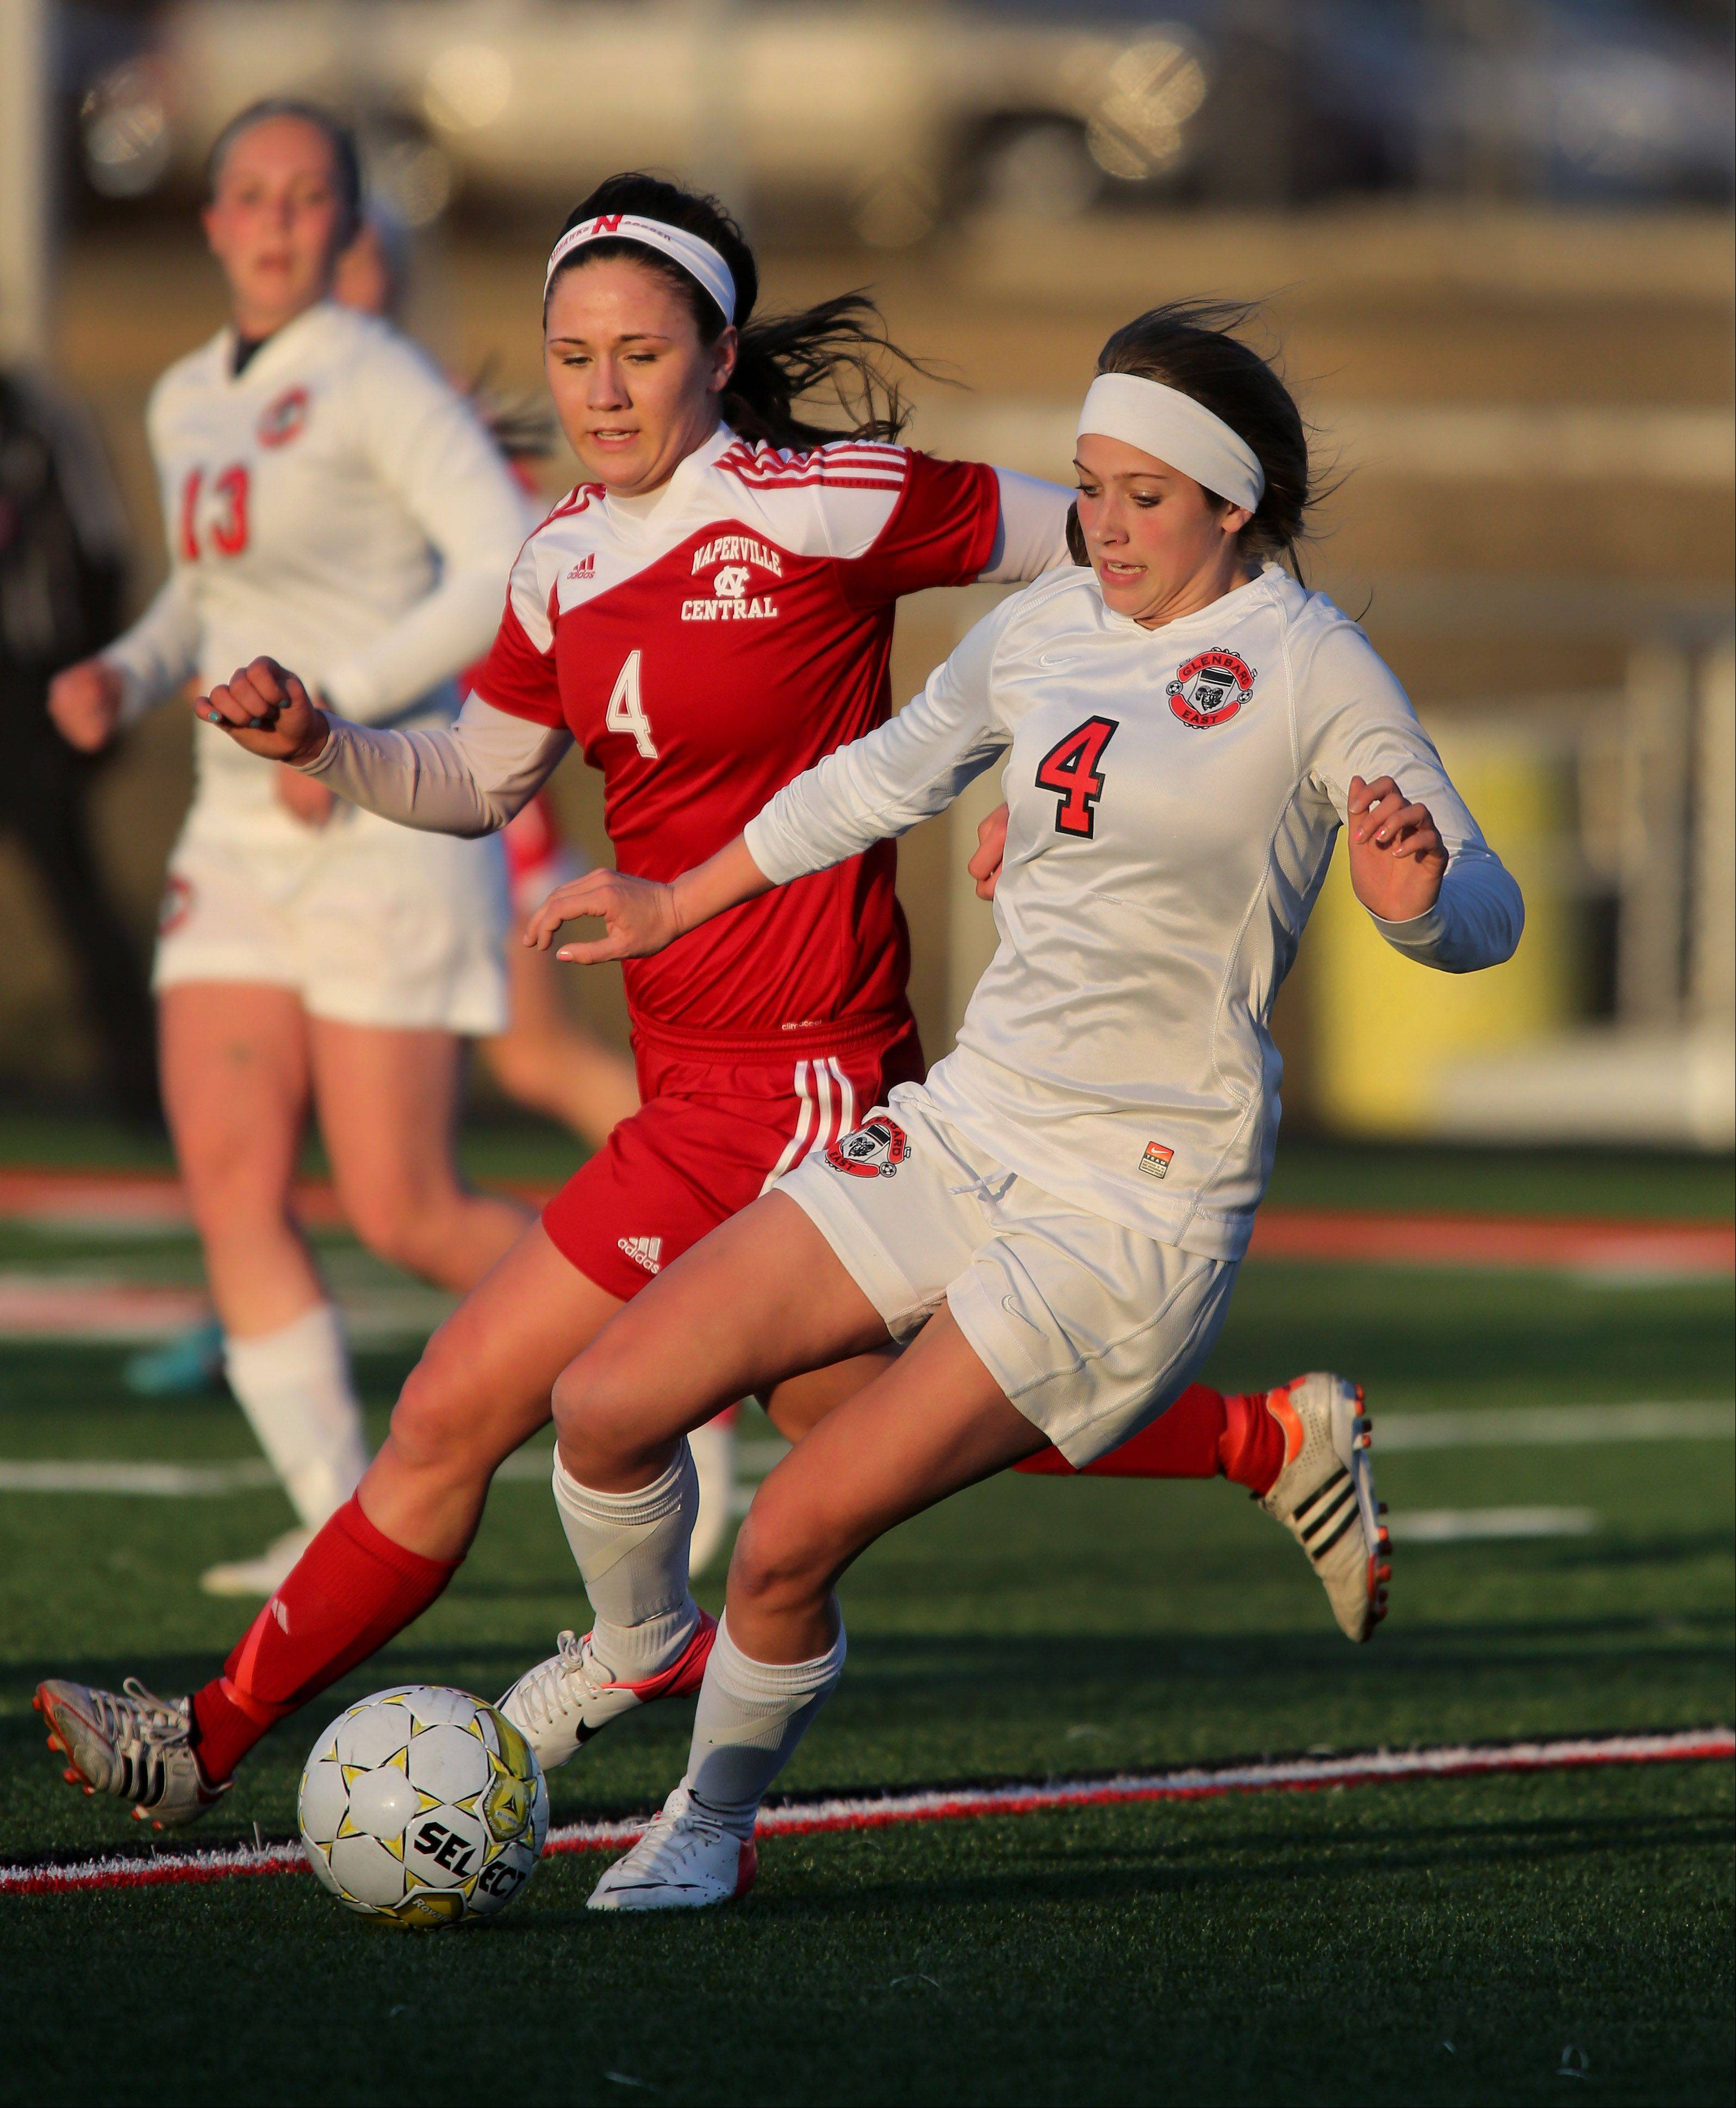 Ellie Fricke, left, of Naperville Central, moves in, but Alex Ruffer of Glenbard East takes control of the ball during girls soccer on Tuesday in Lombard.